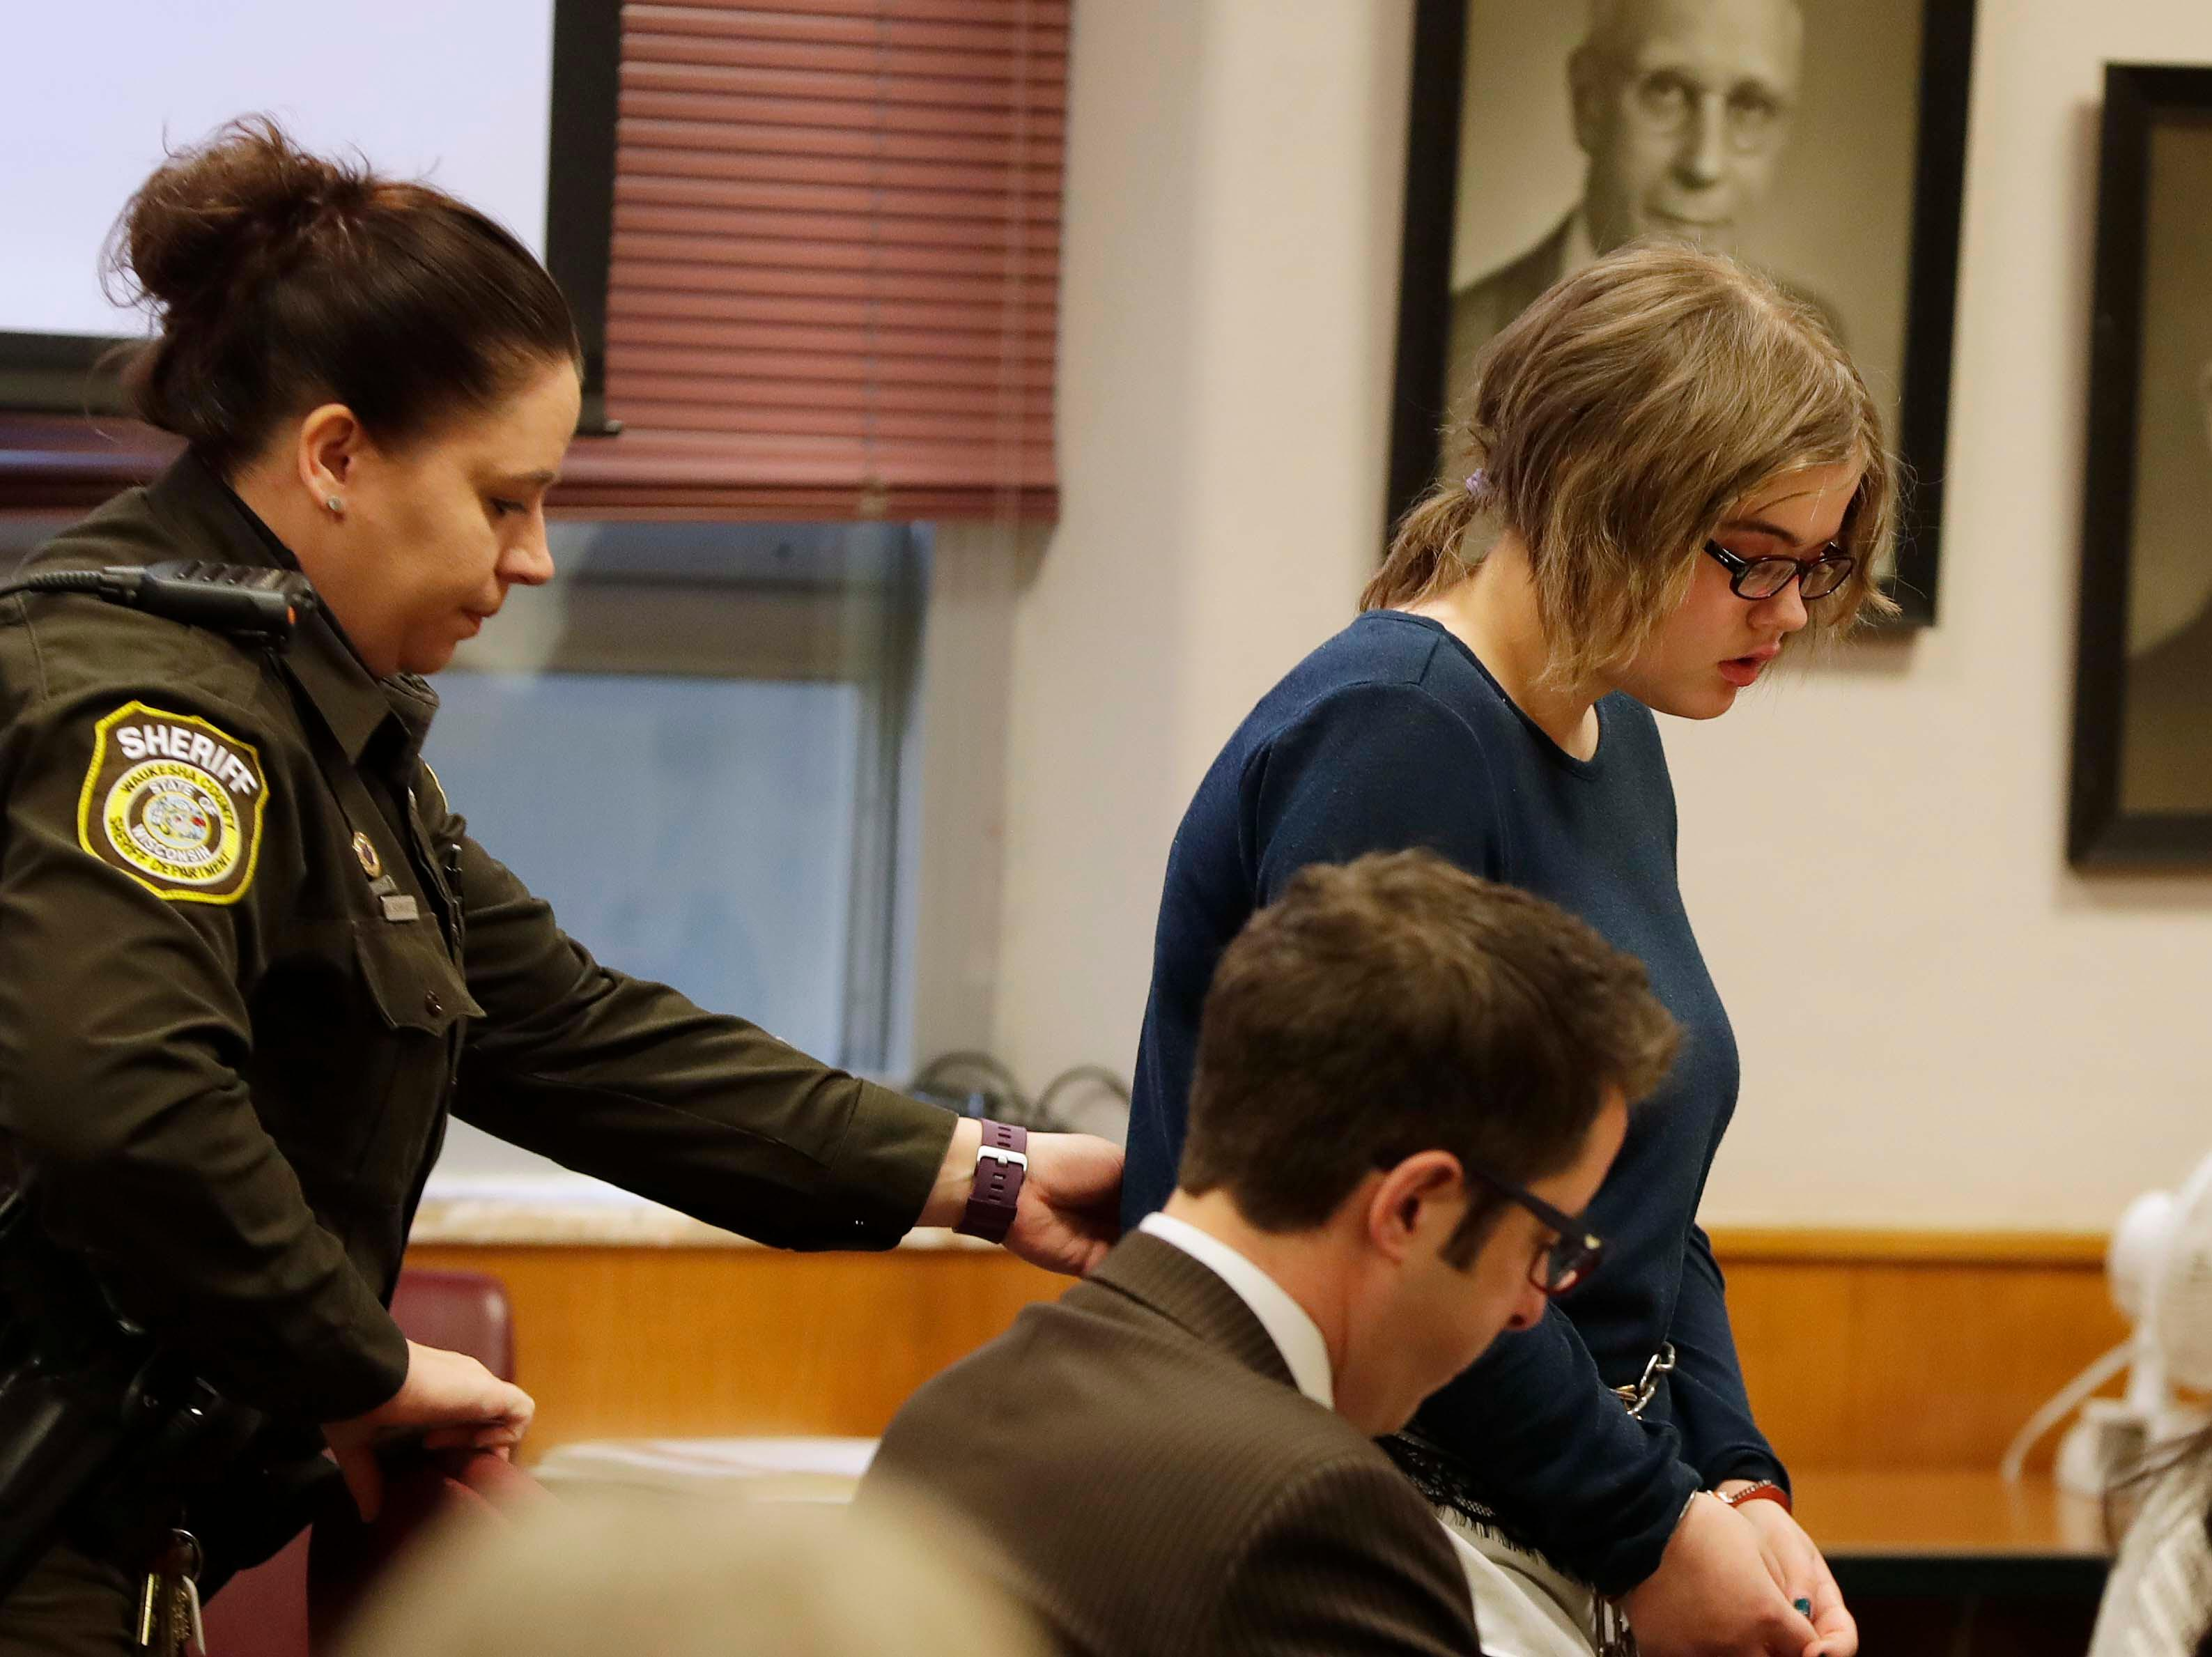 Morgan Geyser, 15,  appears for sentencing before Waukesha County Circuit Judge Michael Bohren, Thursday, Feb. 1, 2018 in Waukesha, Wis.   Geyser is one of two girls who tried to kill a classmate with a knife to appease fictional horror character Slender Man.  Prosecutors want Geyser to spend the maximum 40 years in a mental hospital for stabbing Payton Leutner in suburban Milwaukee in 2014.  (Rick Wood/Milwaukee Journal-Sentinel via AP, Pool)